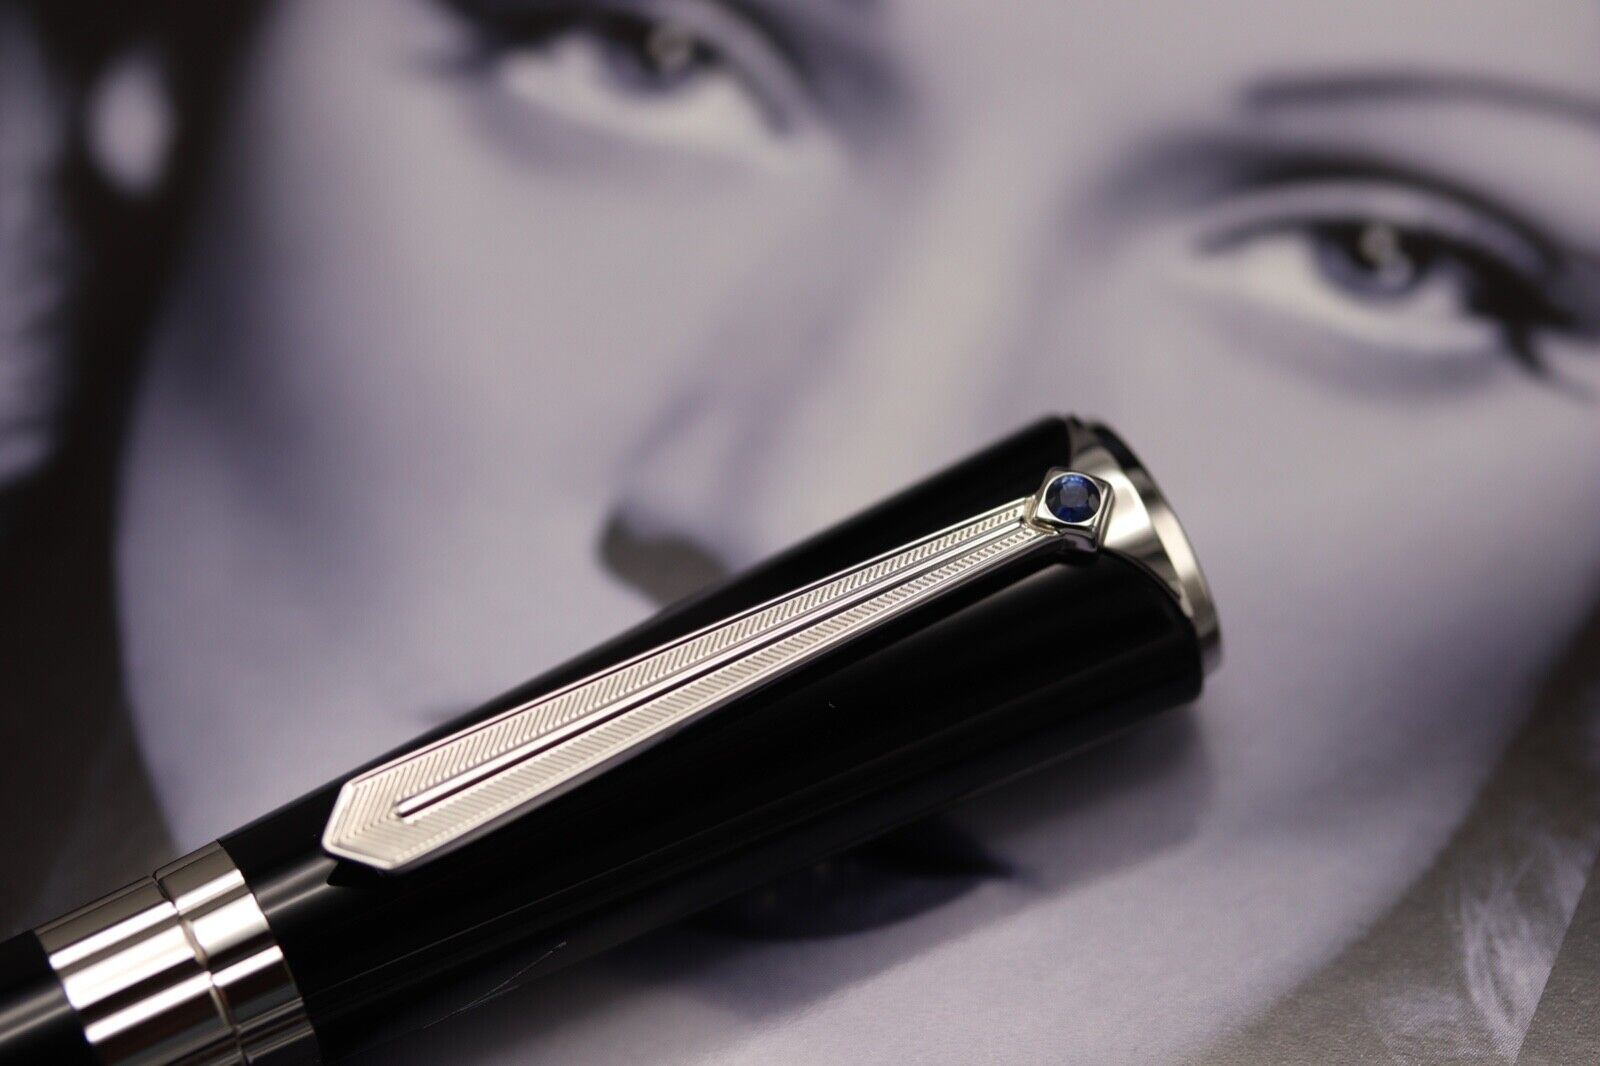 Montblanc Diva Line Marlene Dietrich Special Edition Fountain Pen - NEW MARCH 21 5